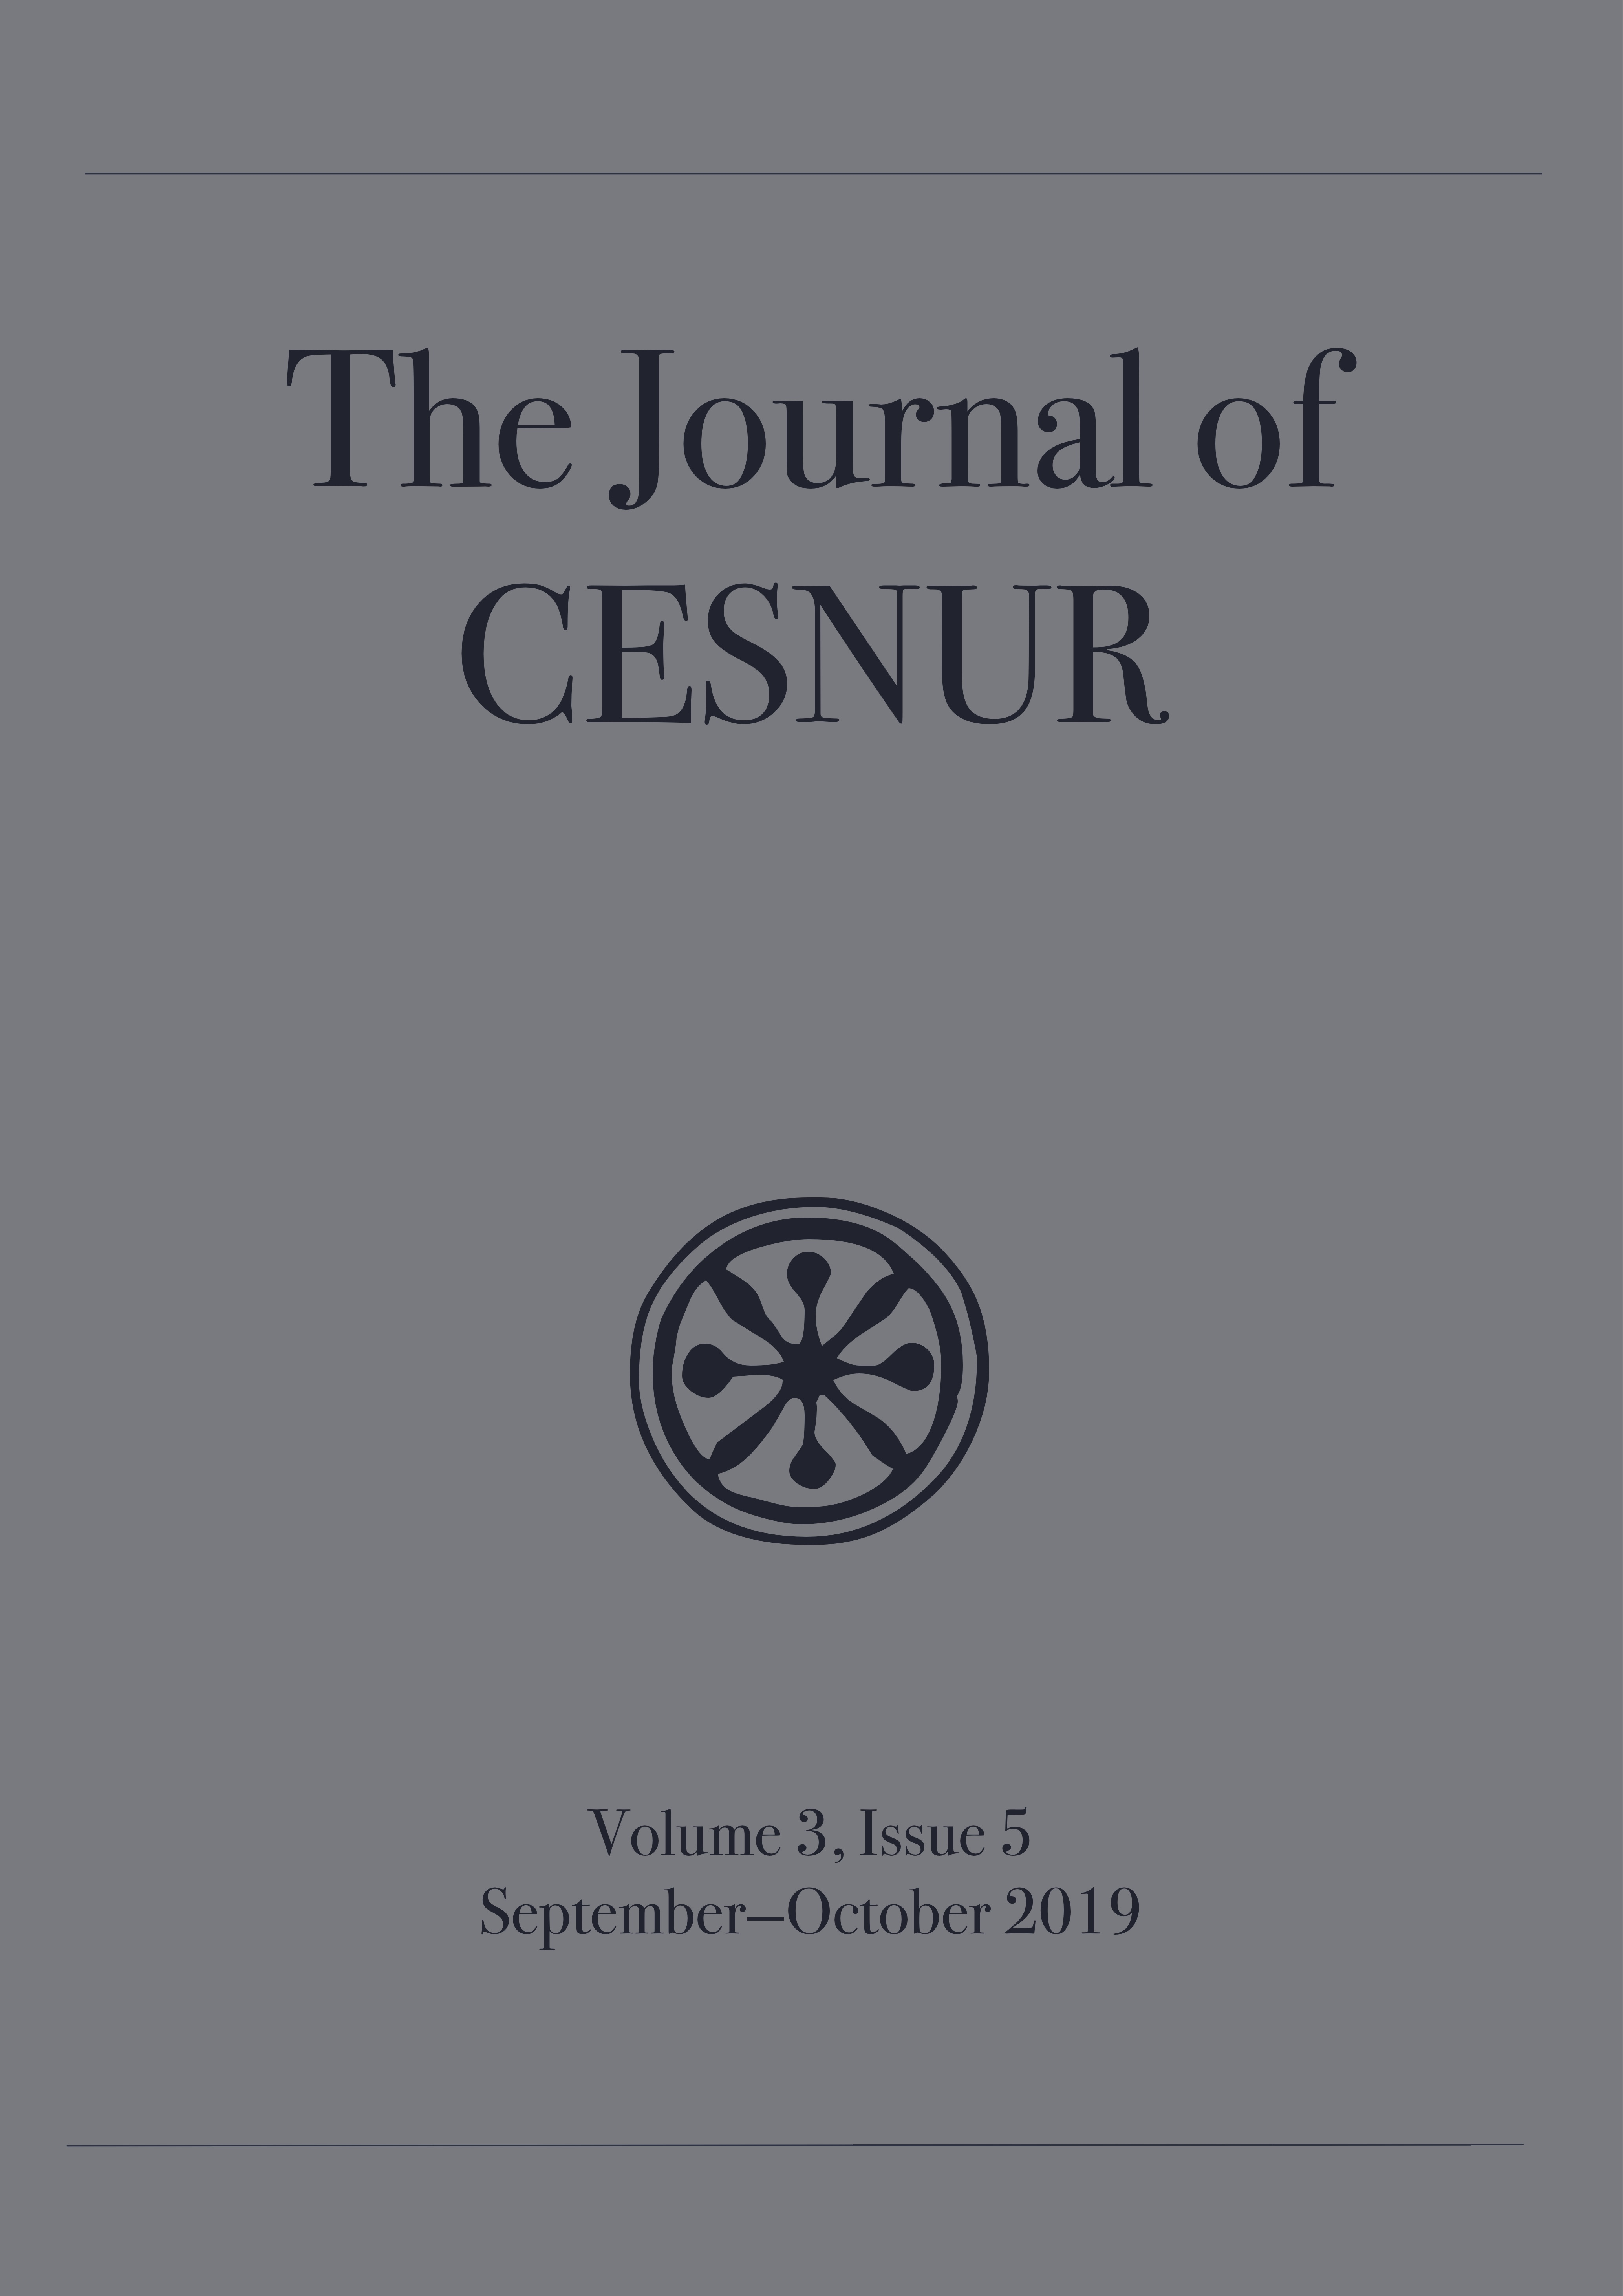 The Journal of Cesnur Volume 3 Issue 5 cover